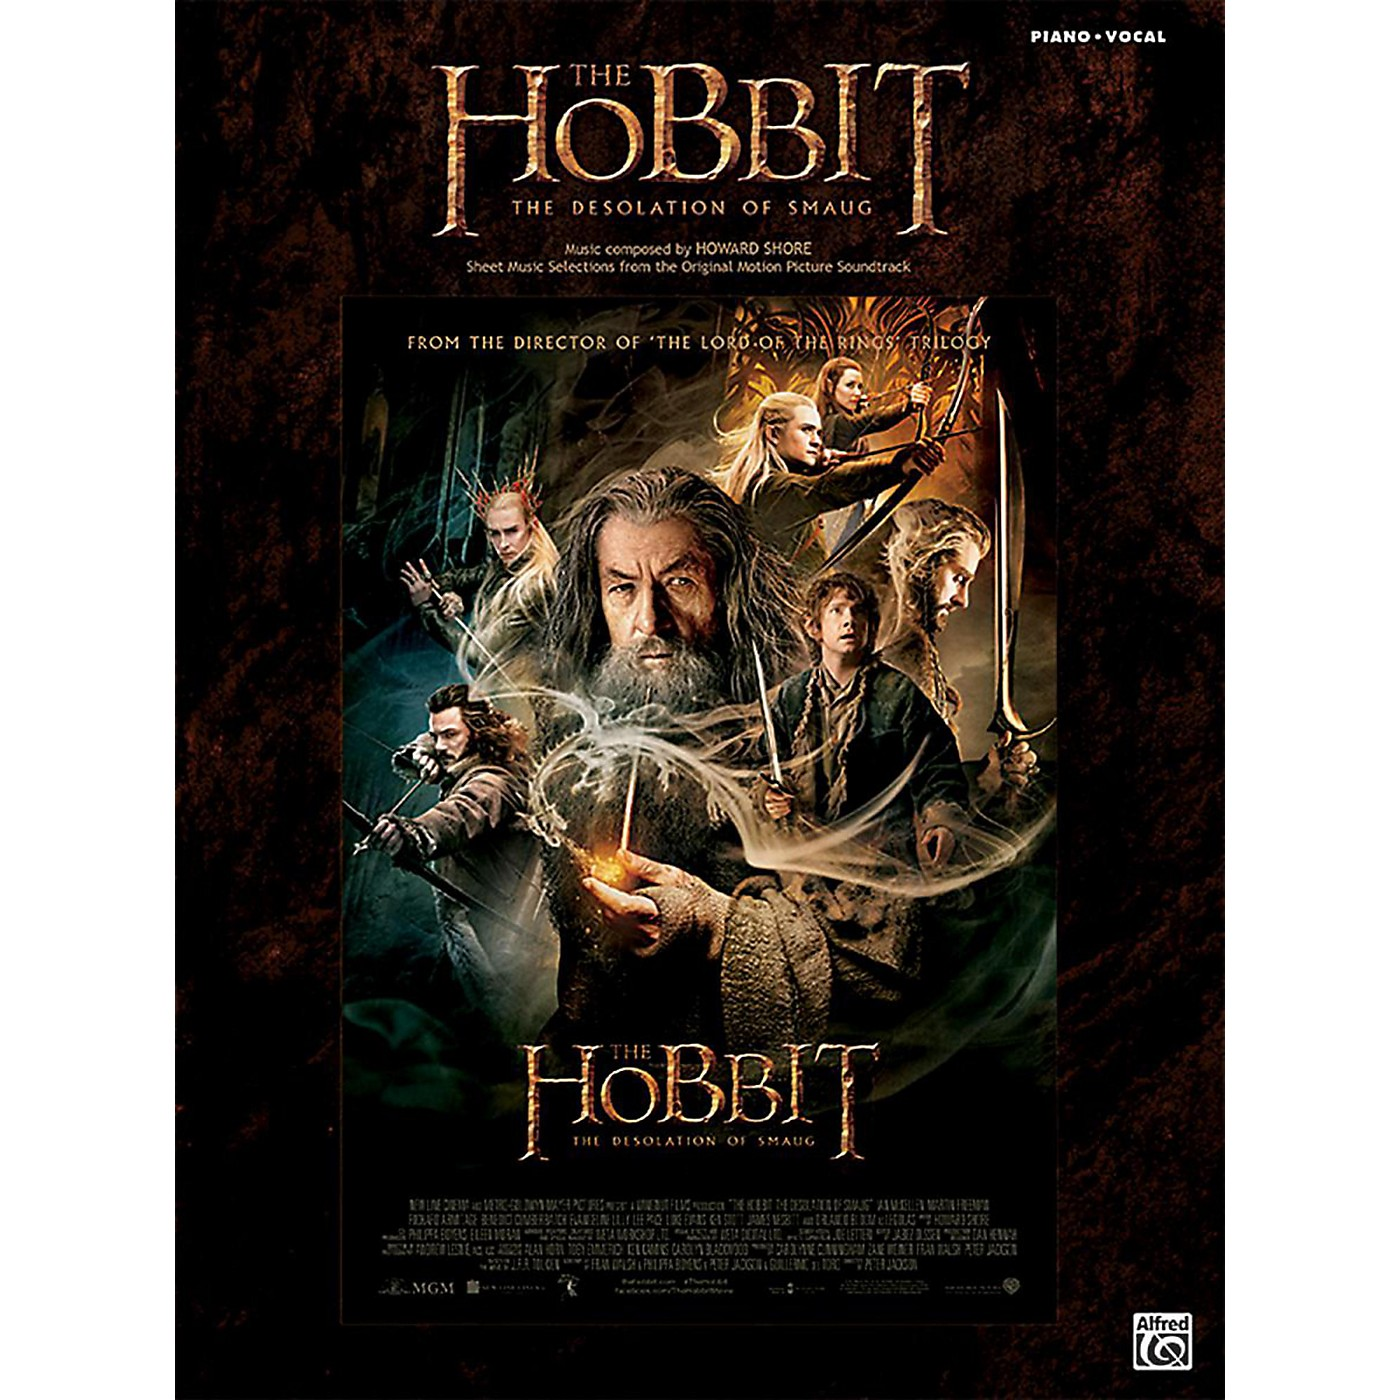 Alfred The Hobbit The Desolation of Smaug Piano/Vocal Book thumbnail